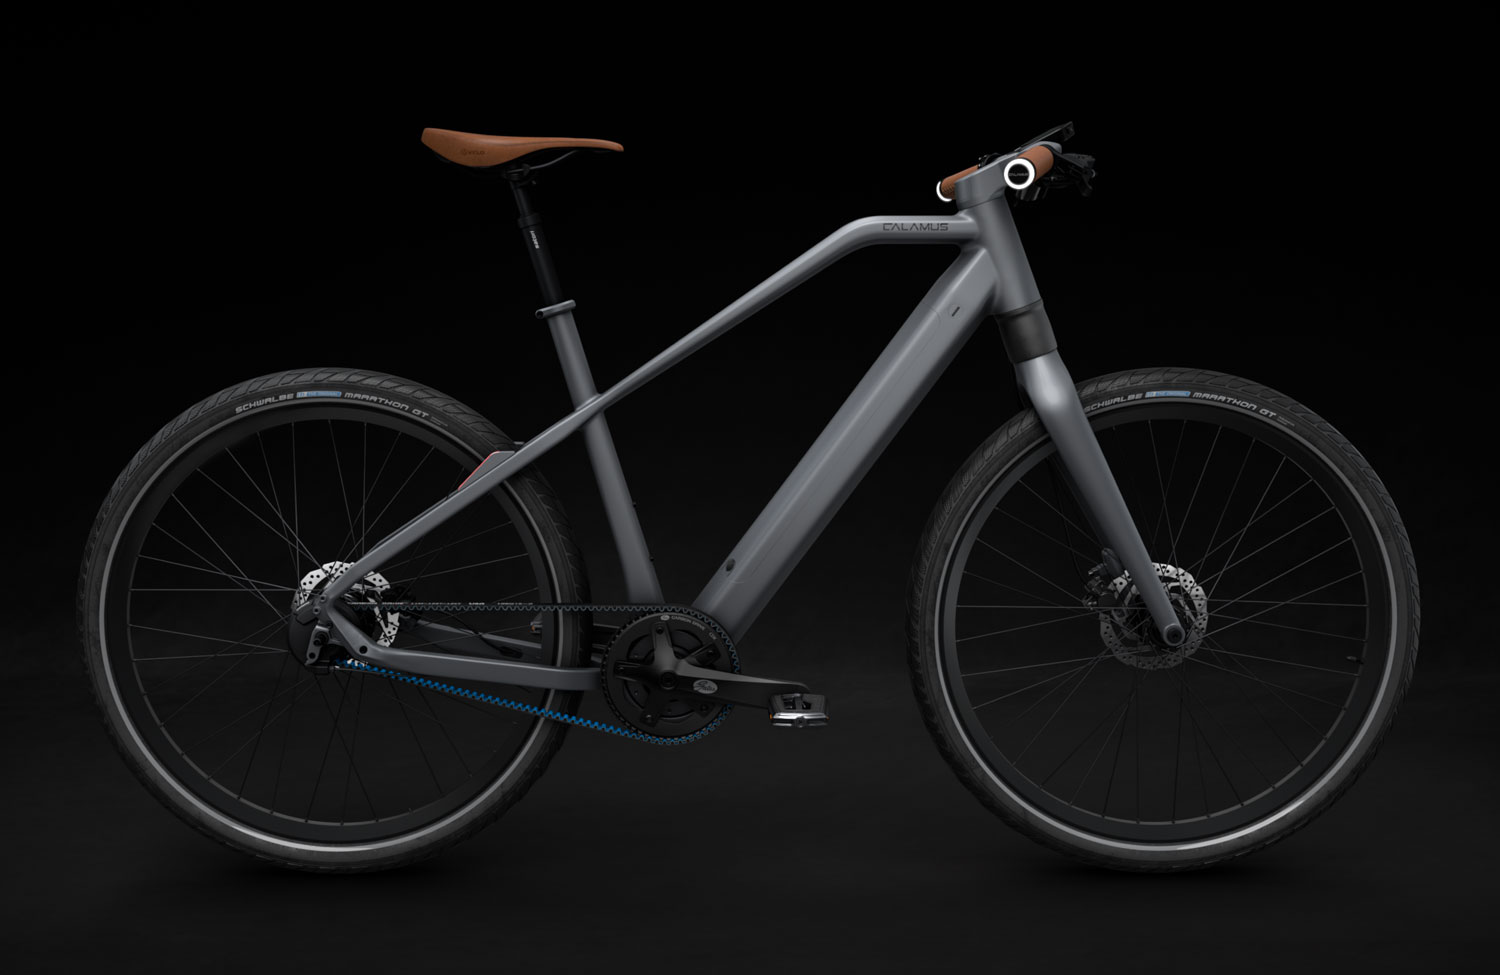 Calamus One : Ambitioniertes Urban E-Bike mit vielen smarten Features